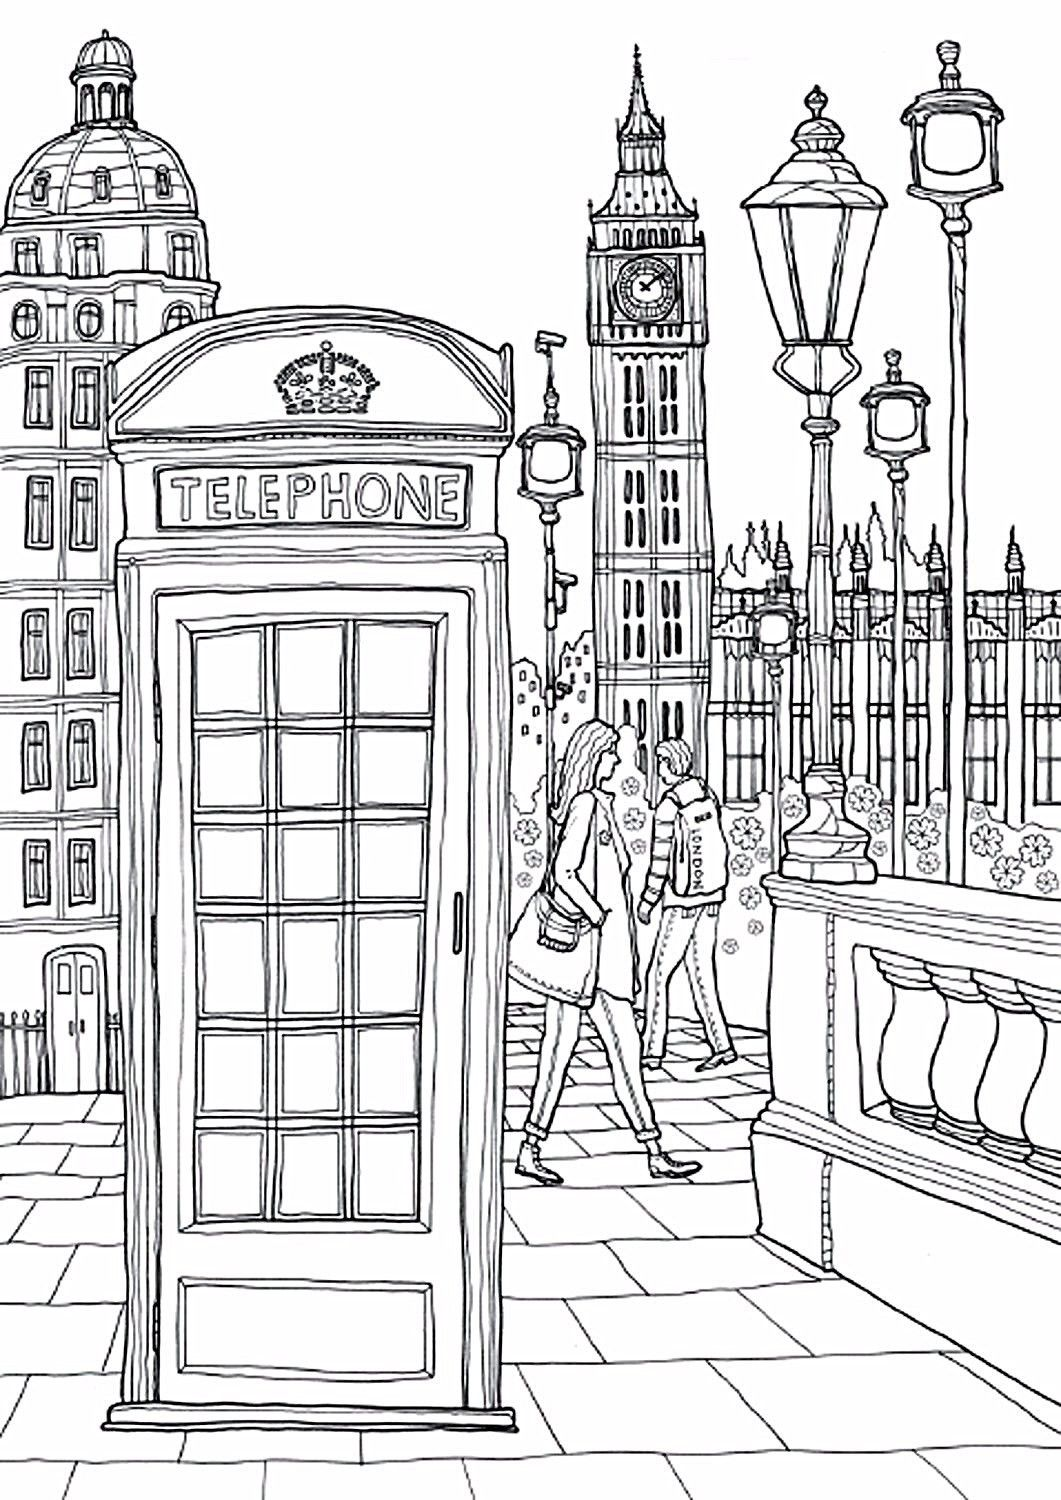 Pin by Lena E on Colouring pages | Pinterest | Coloring books, Adult ...